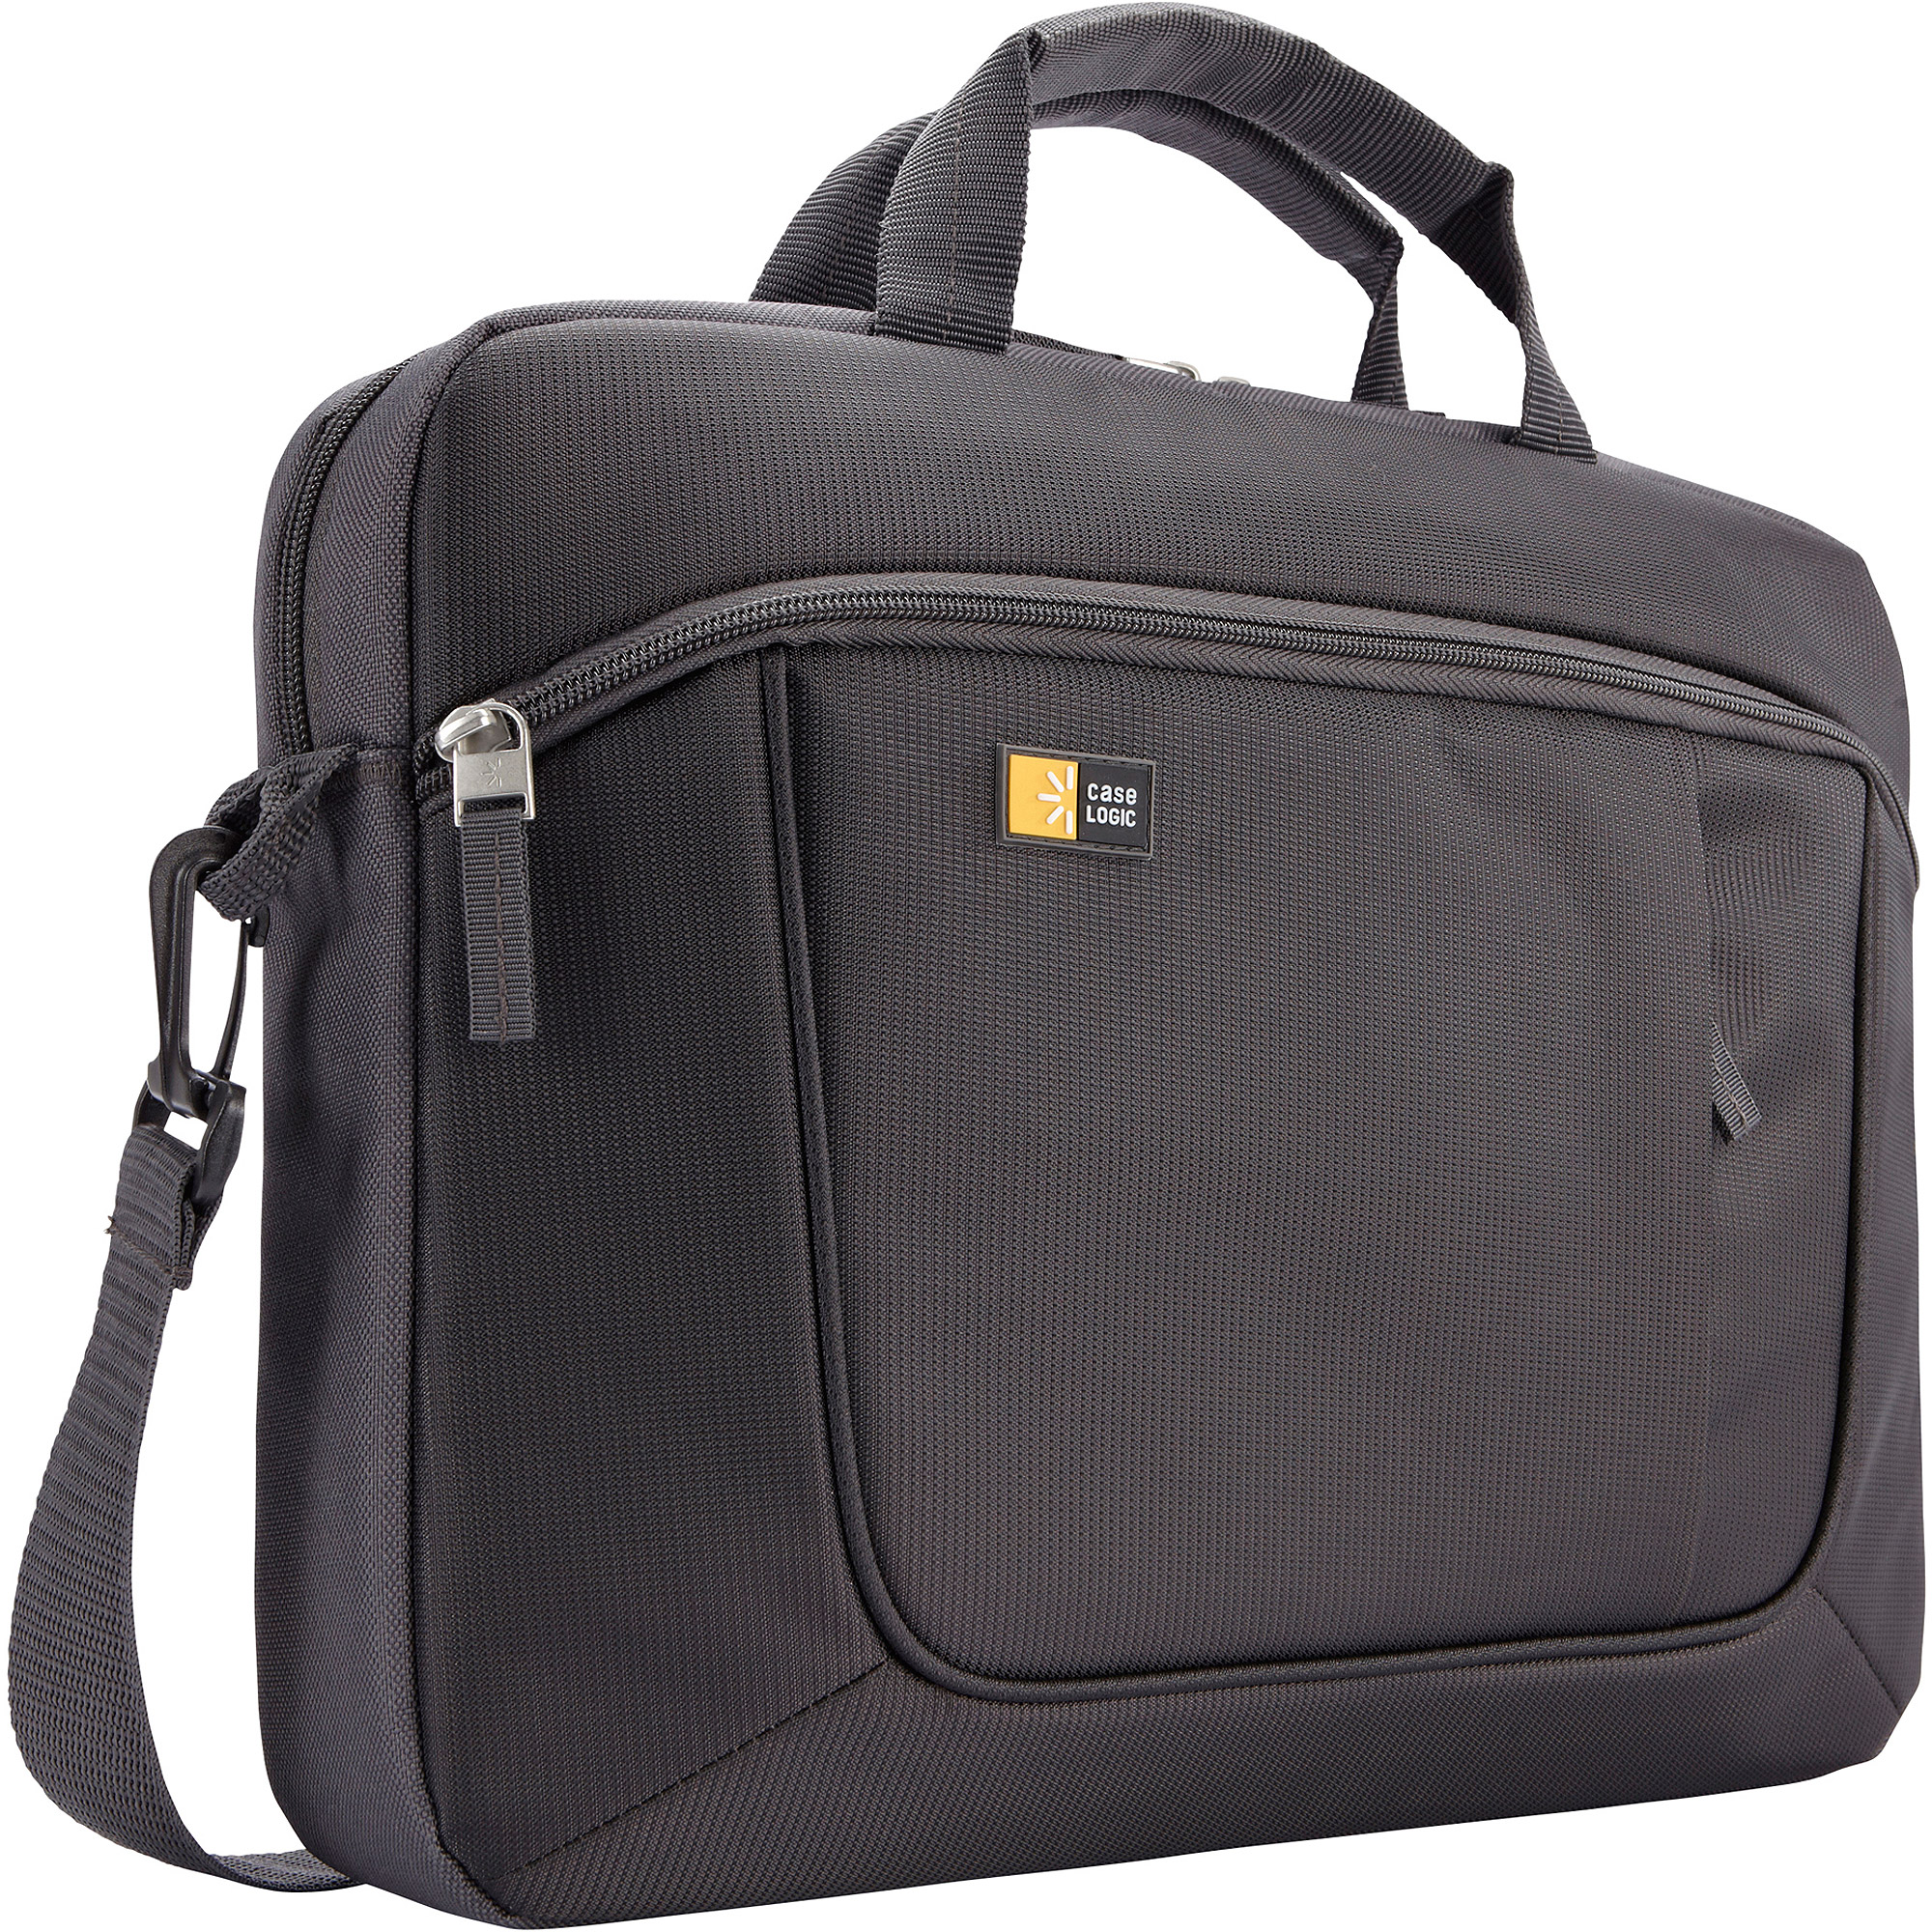 "Case Logic Slimcase Attache for up to 15.6"" Laptops"